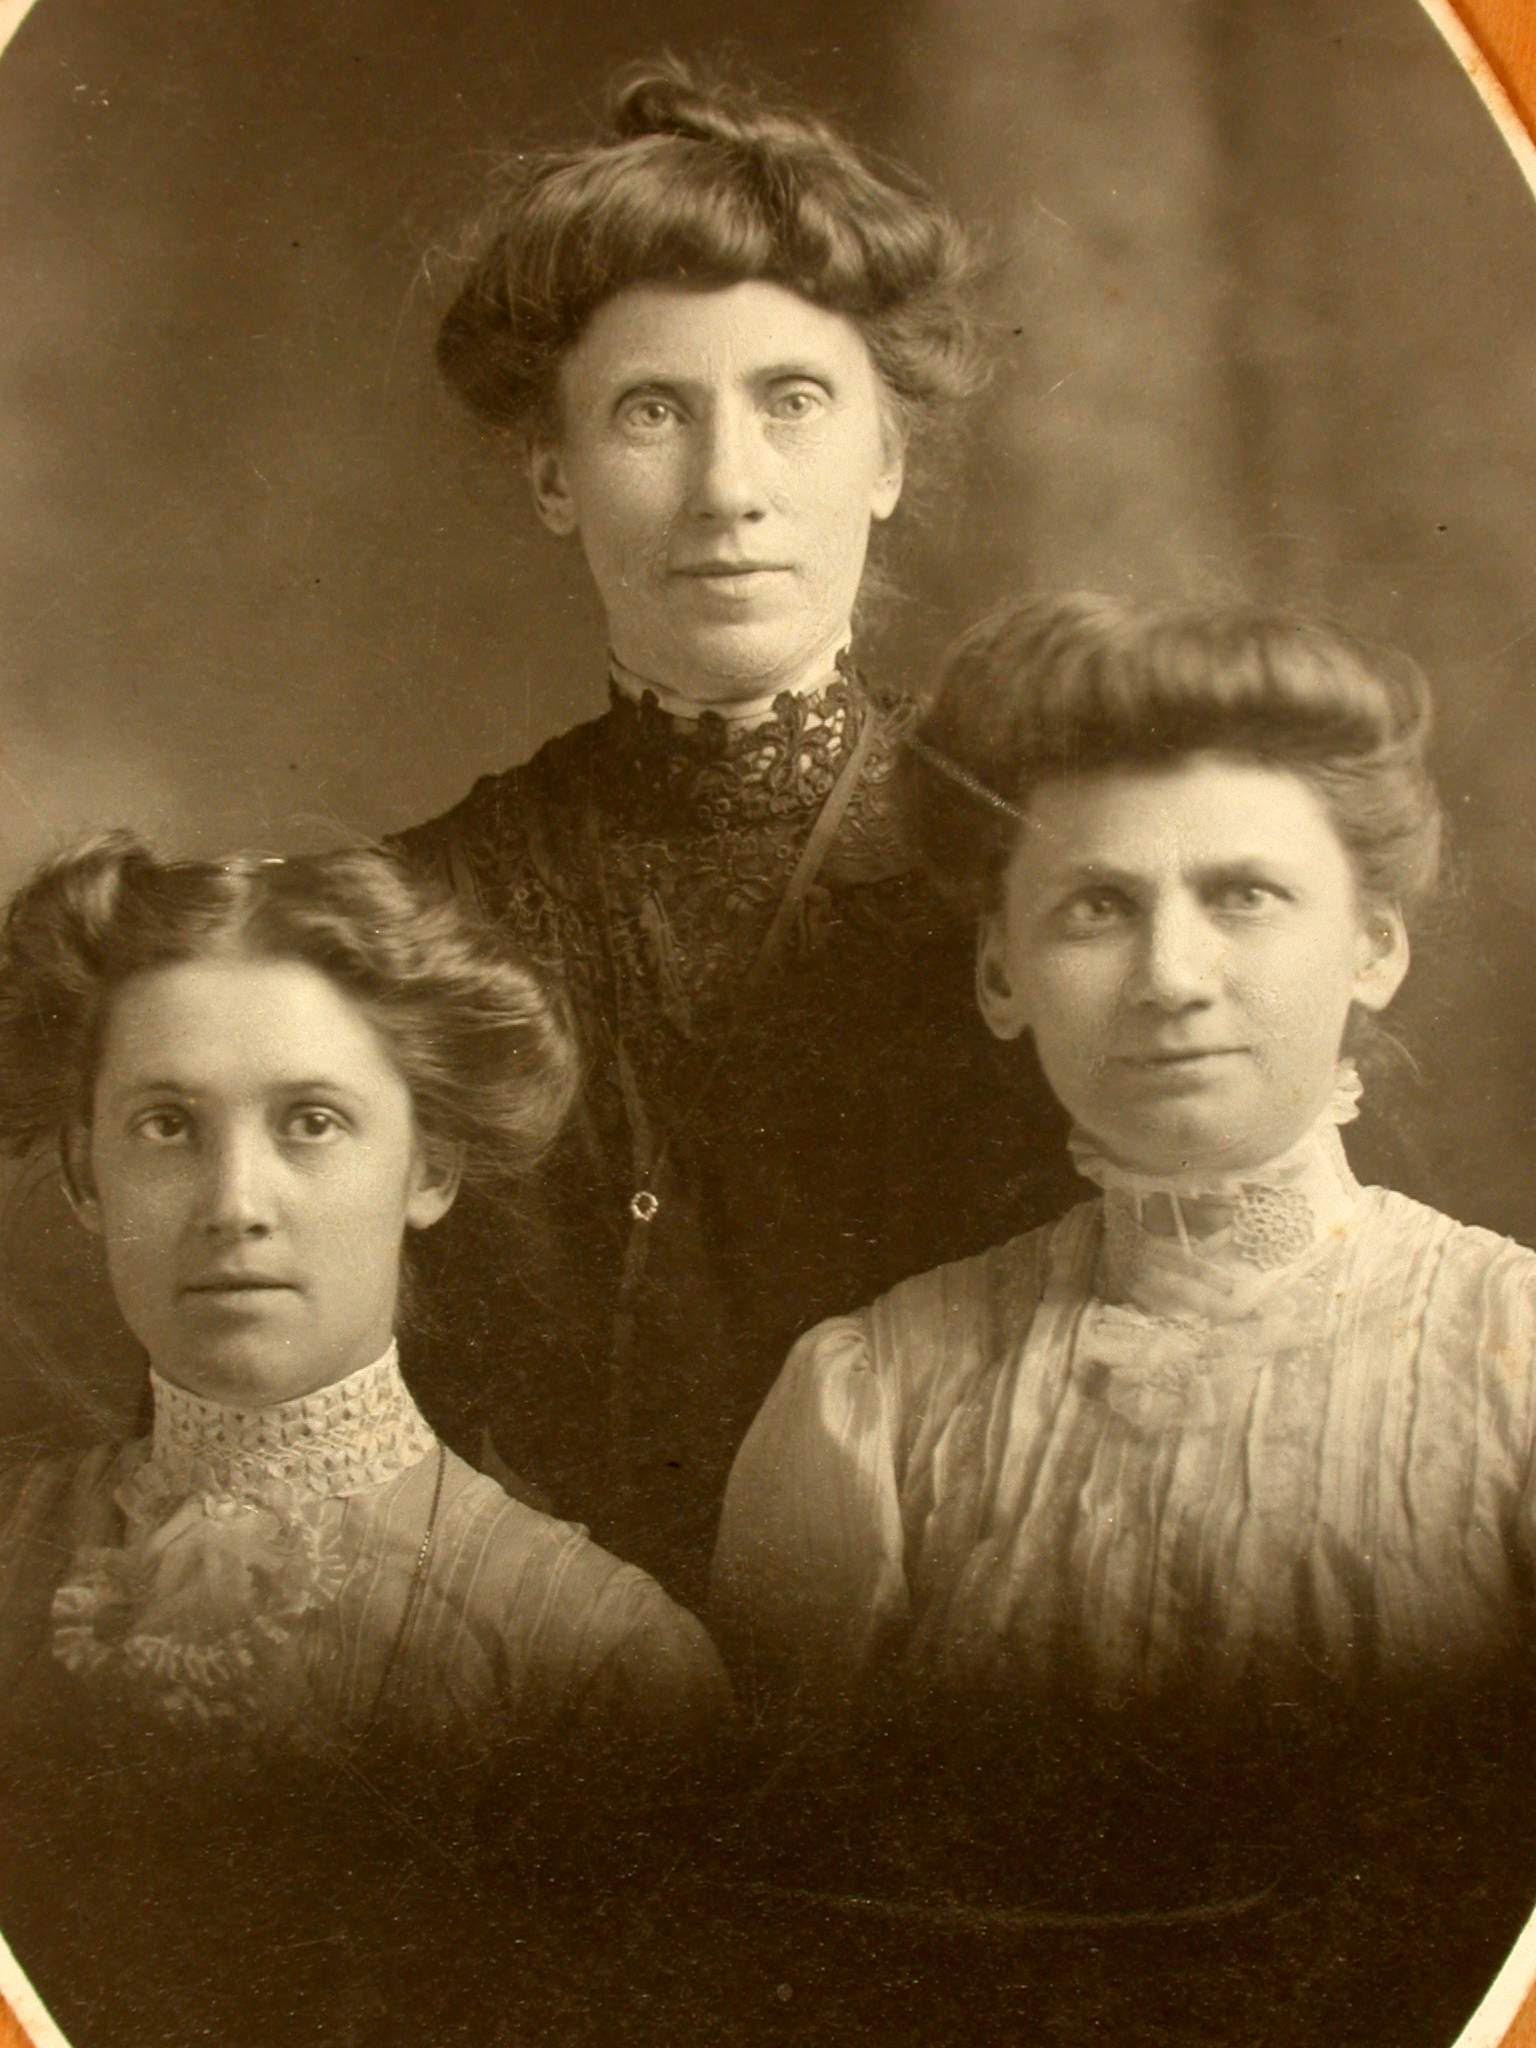 1887. Left to right: Isobel (Bel), Margaret, and Mary Spencer. This picture was taken in St. Catherines by an unknown photographer.